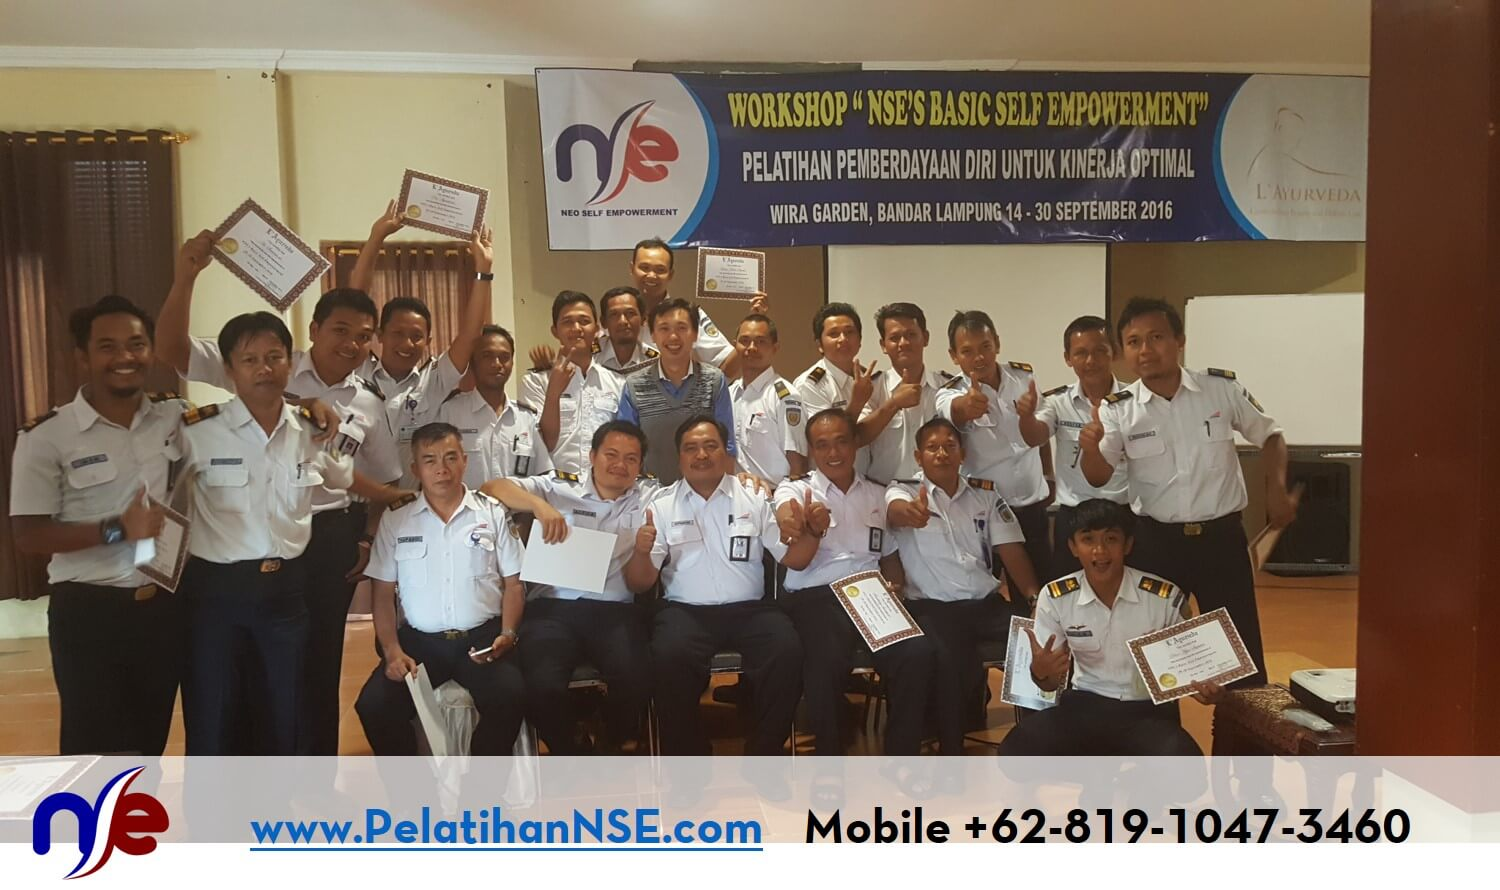 Basic Self Empowerment PT. KAI (Persero) 29-30 September 2016 - Foto Bersama